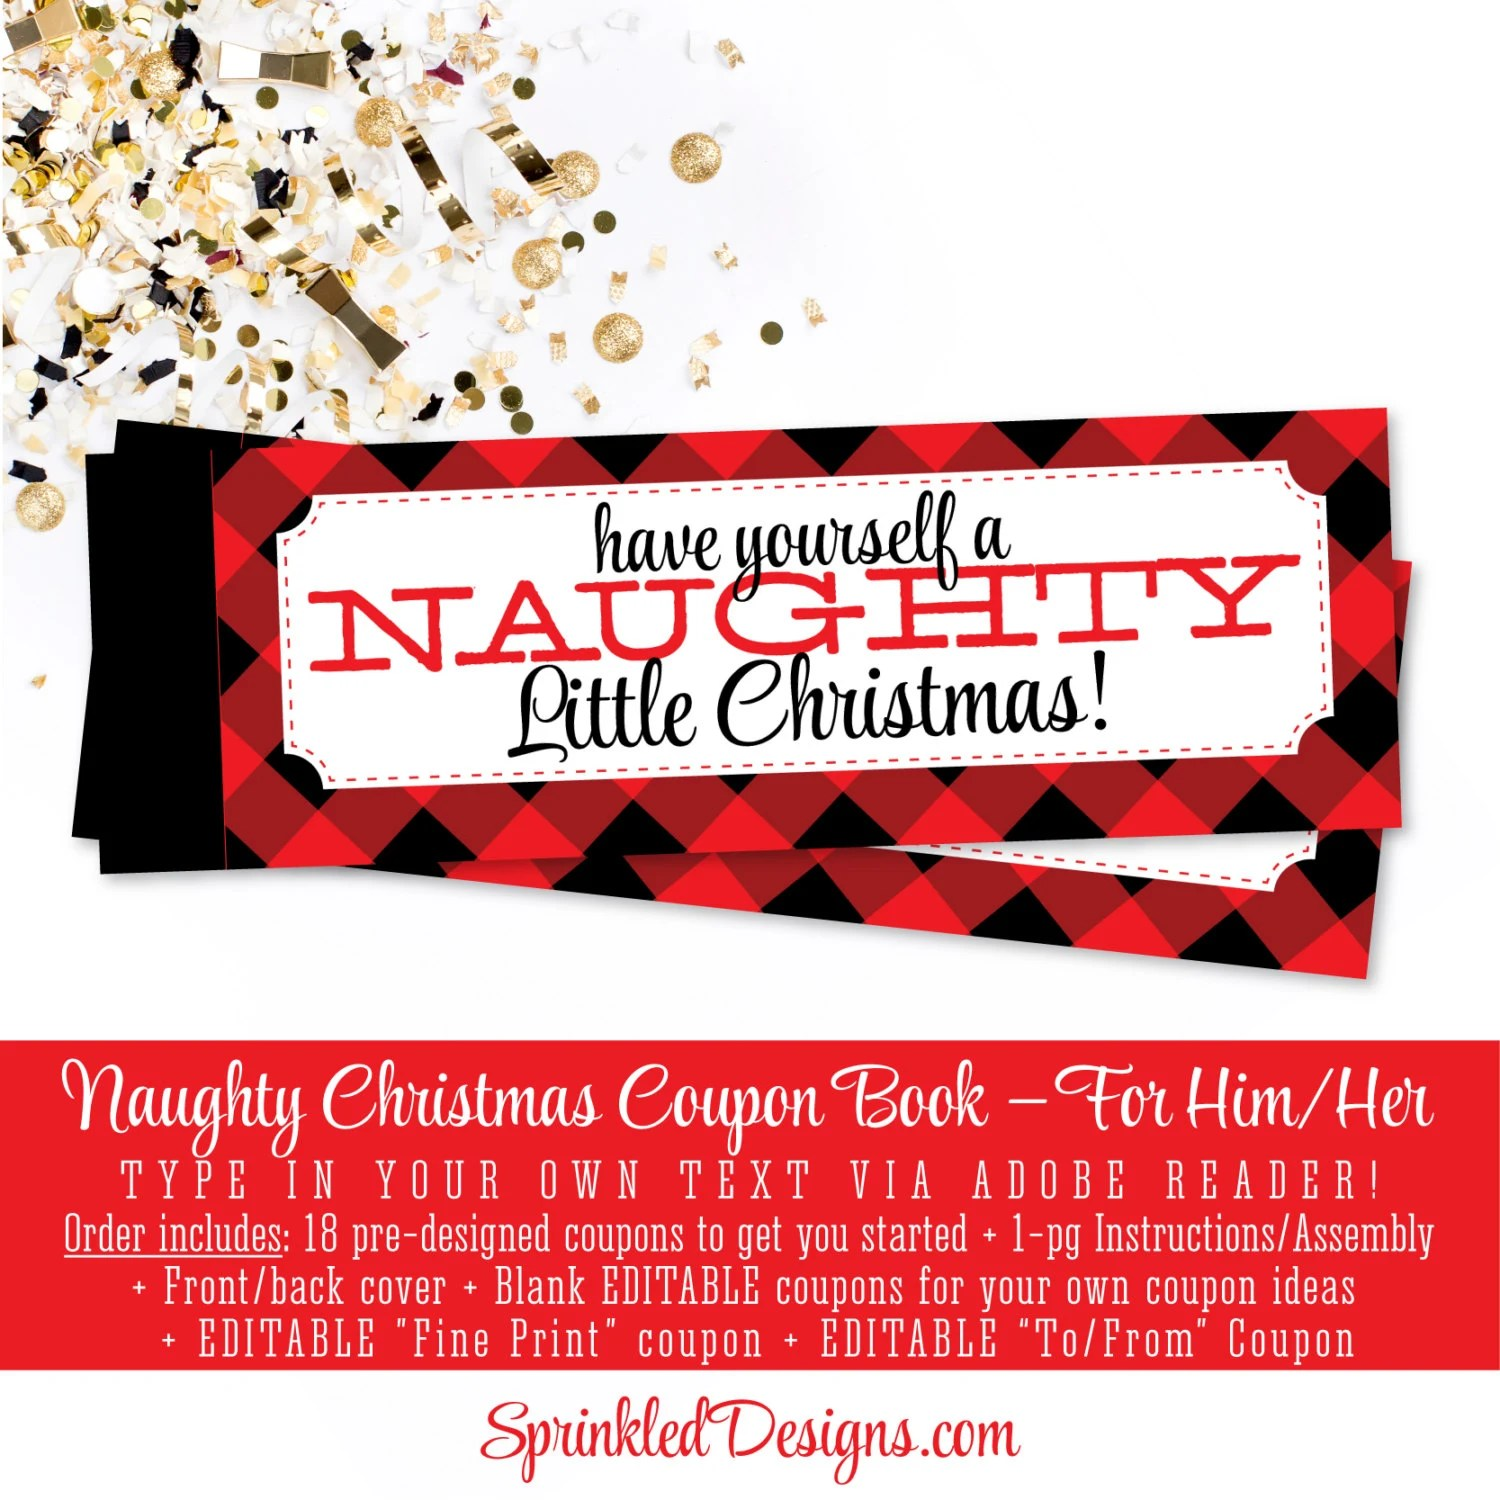 Christmas Coupon Ideas  Good Coupons For Boyfriend Love